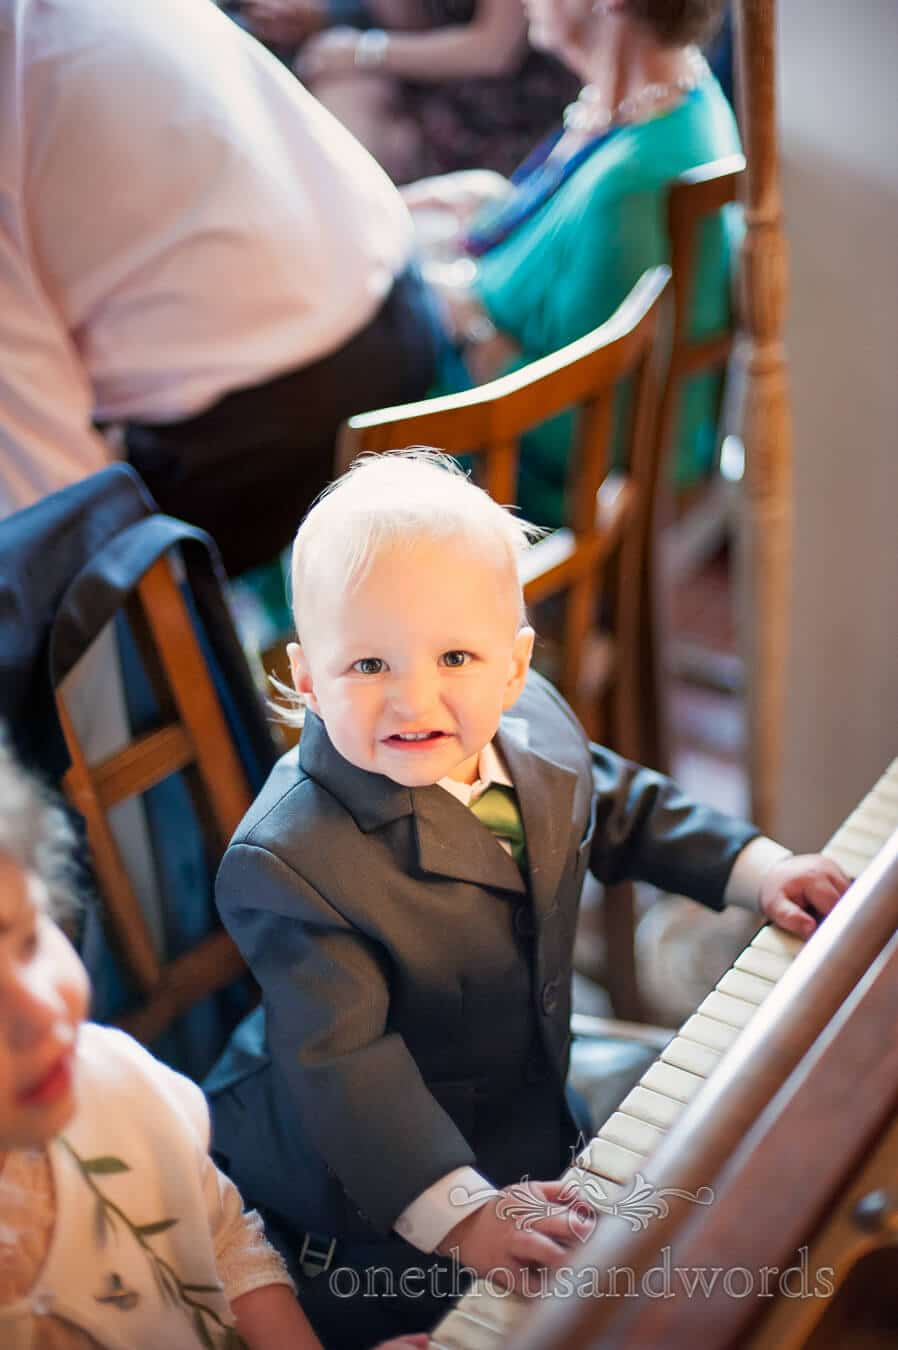 Child wedding guest plays piano at Prussia Cove